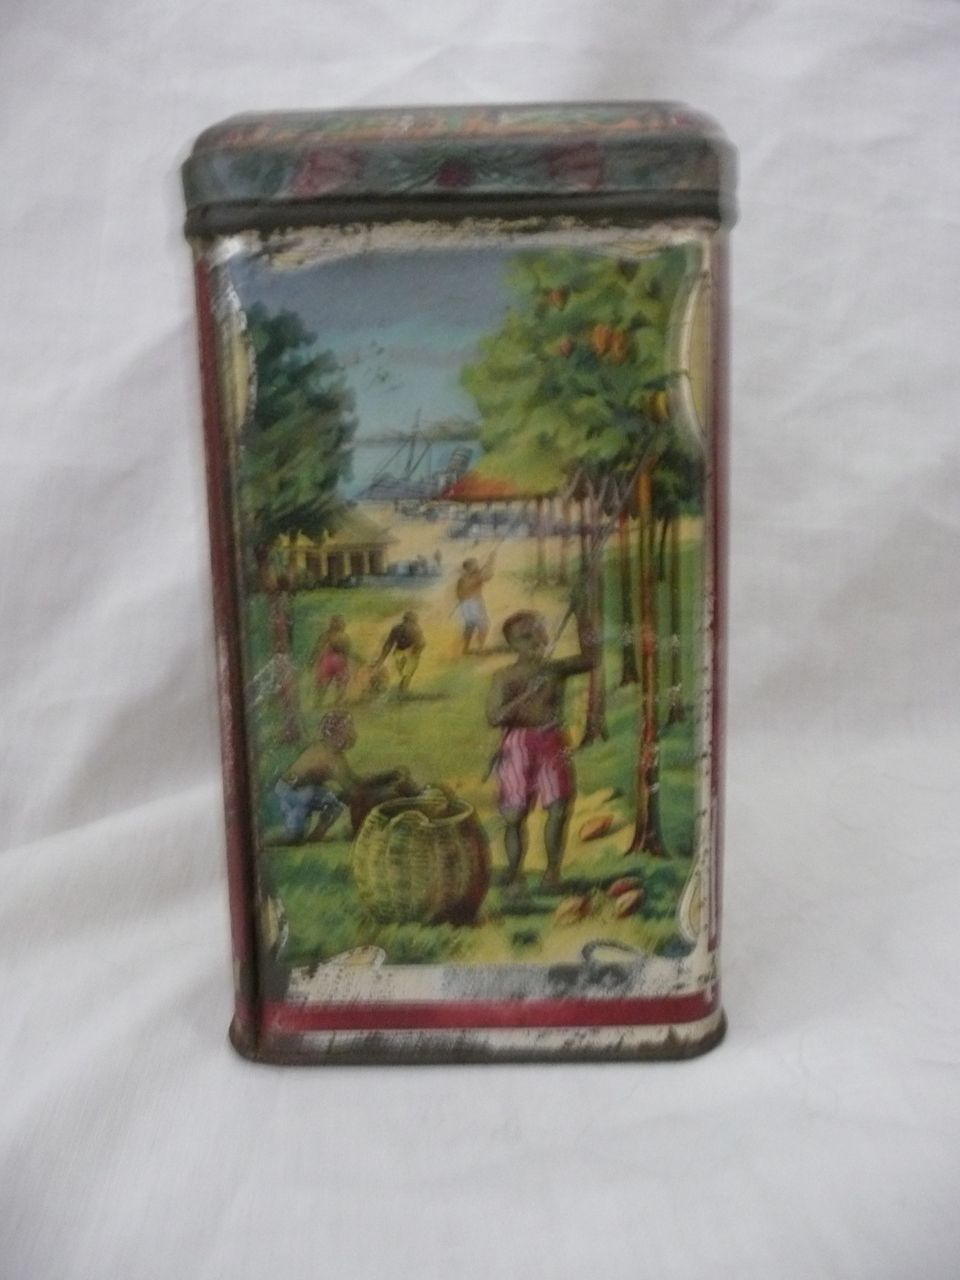 COOLIE Brand Cocoa Tin - Indian Tea Planters Combination - London - Circa 1890-1910